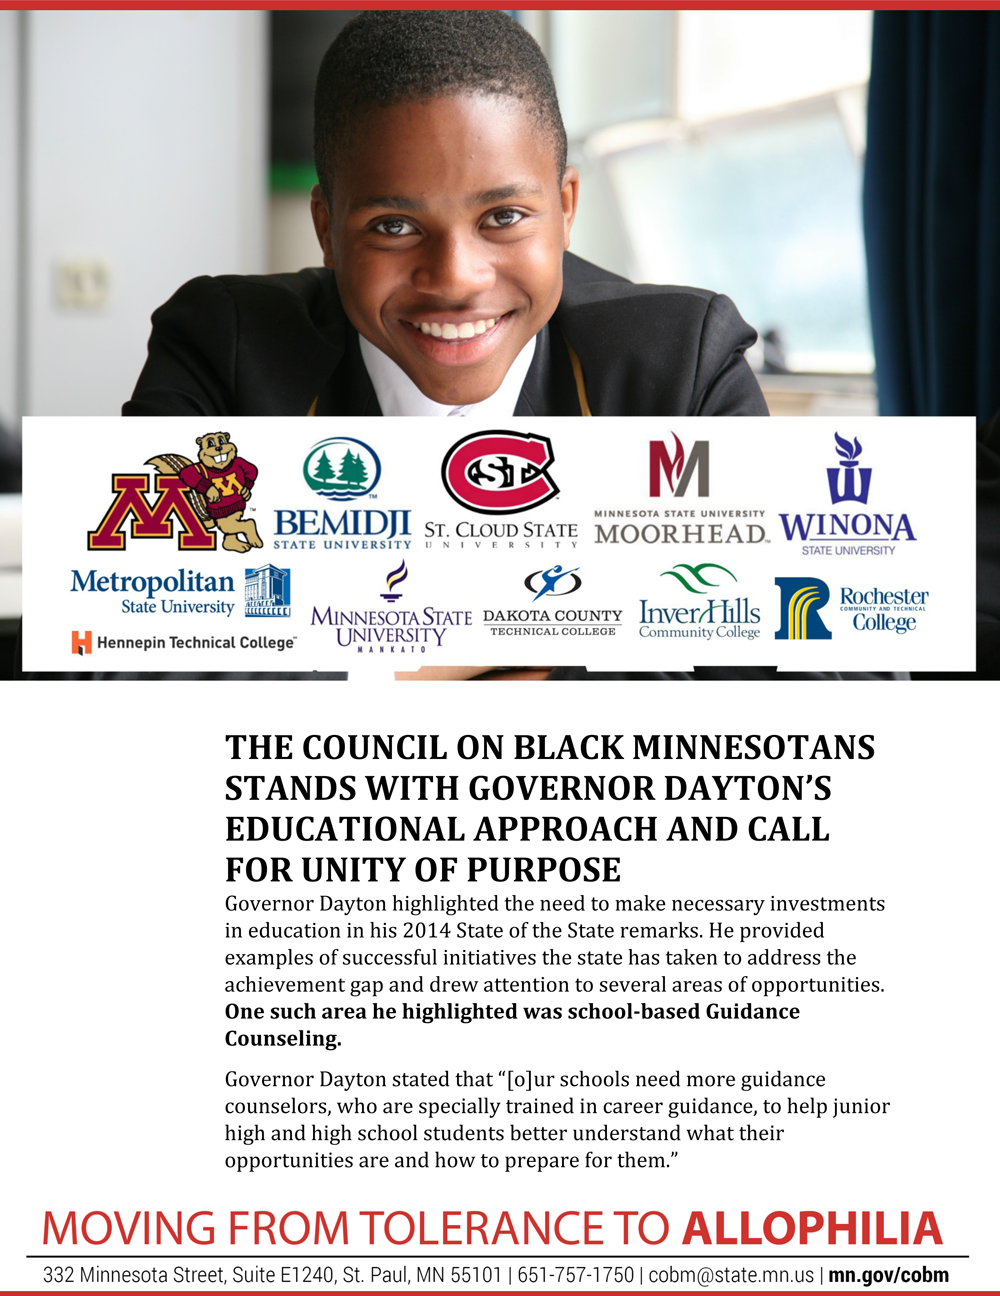 The Council on Black Minnesotans Stands with Governor Dayton's Approach & Call for Unity of Purpose